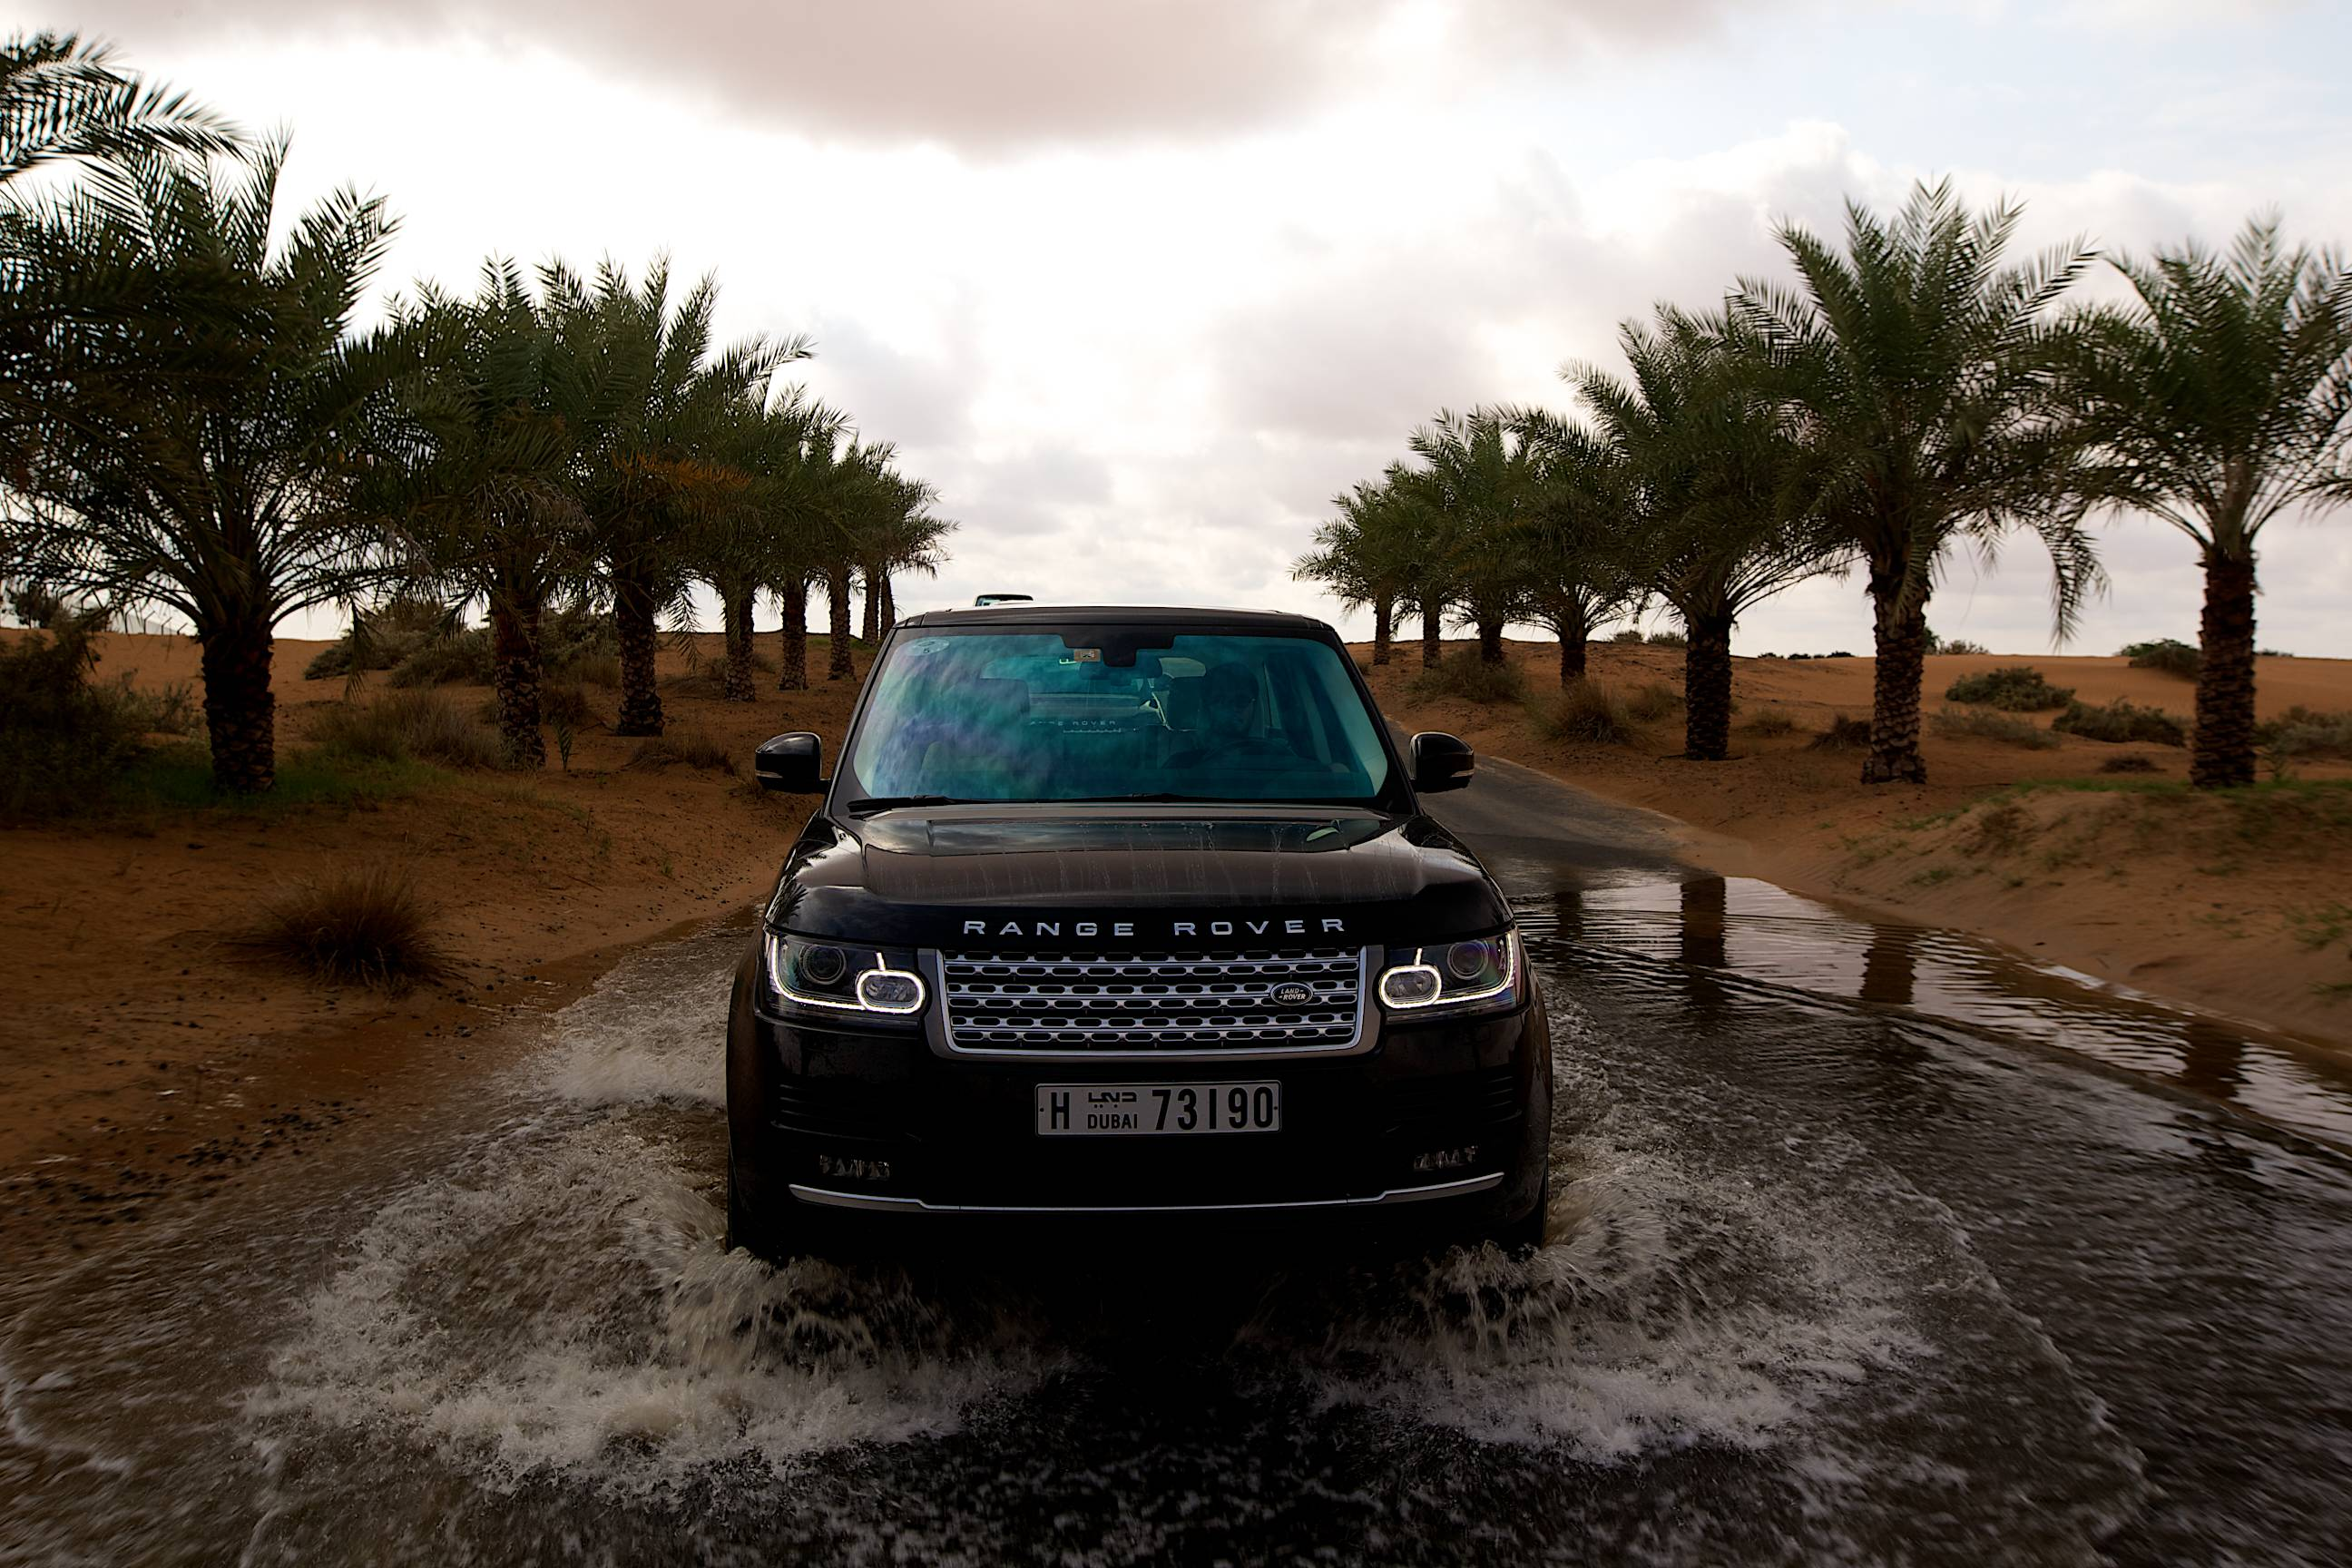 Range Rover Vogue 2018 Prices in Pakistan and Reviews